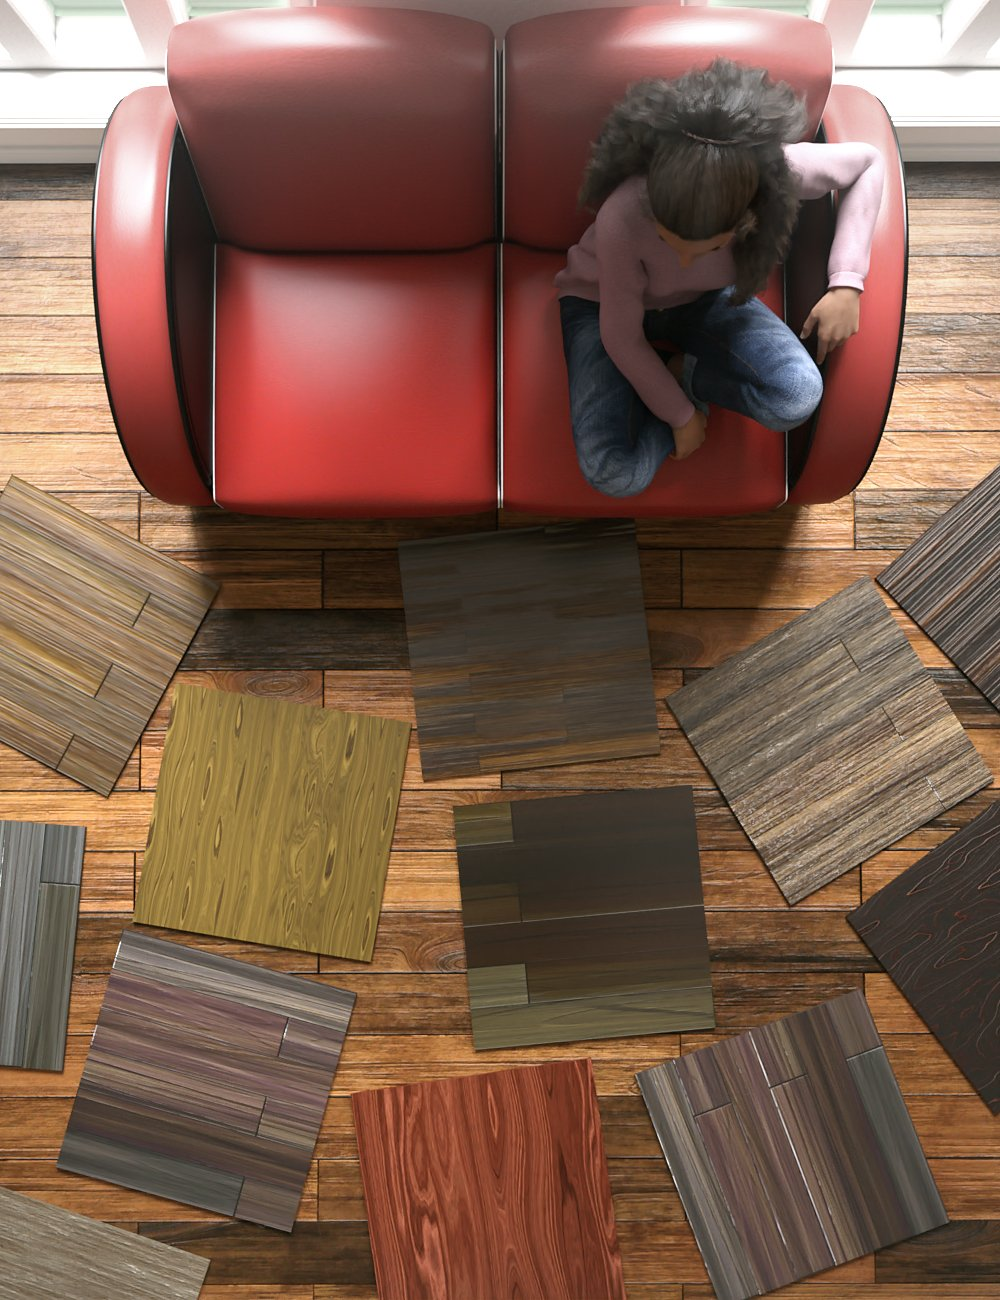 Laminated Wood Floors Iray Shaders by: JGreenlees, 3D Models by Daz 3D